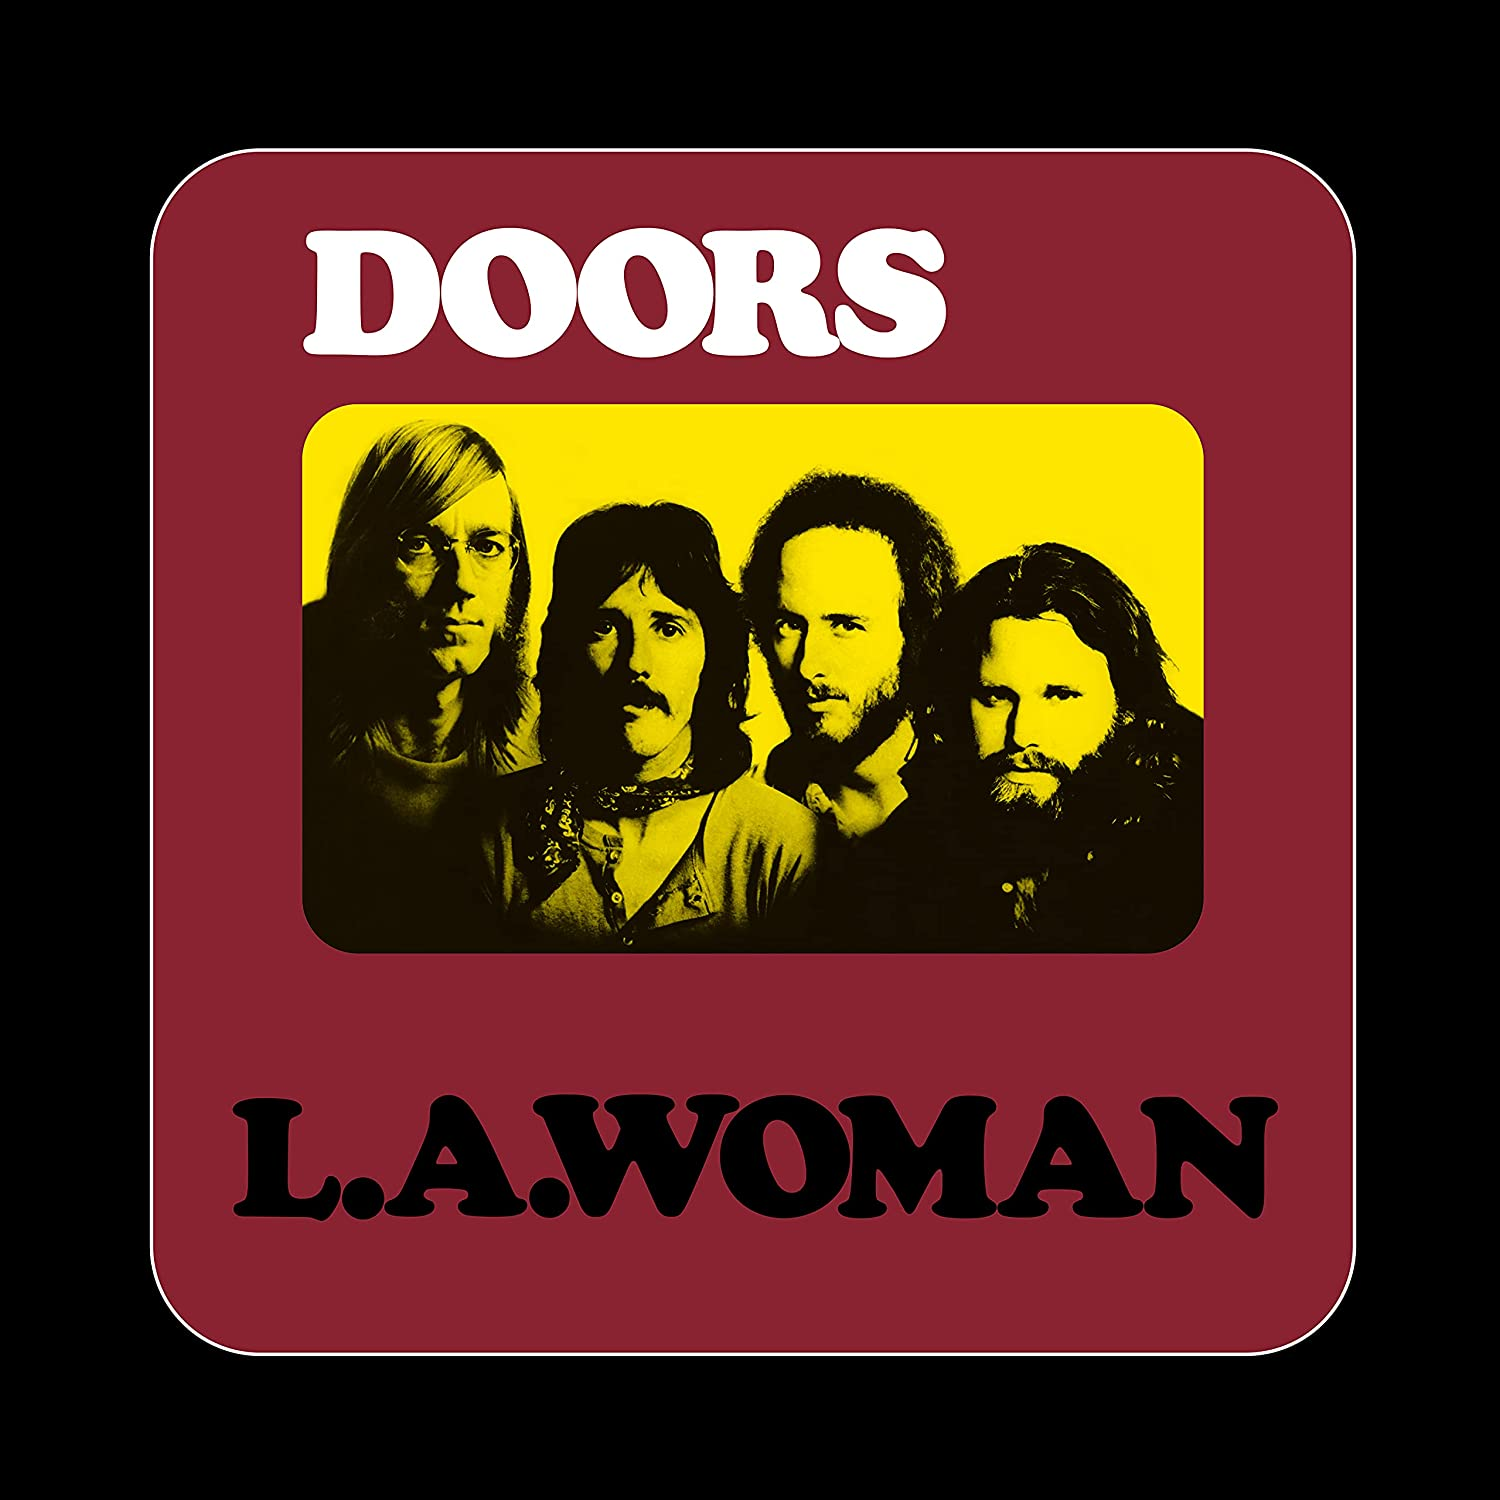 The Doors / L.A. Woman 50th anniversary deluxe edition